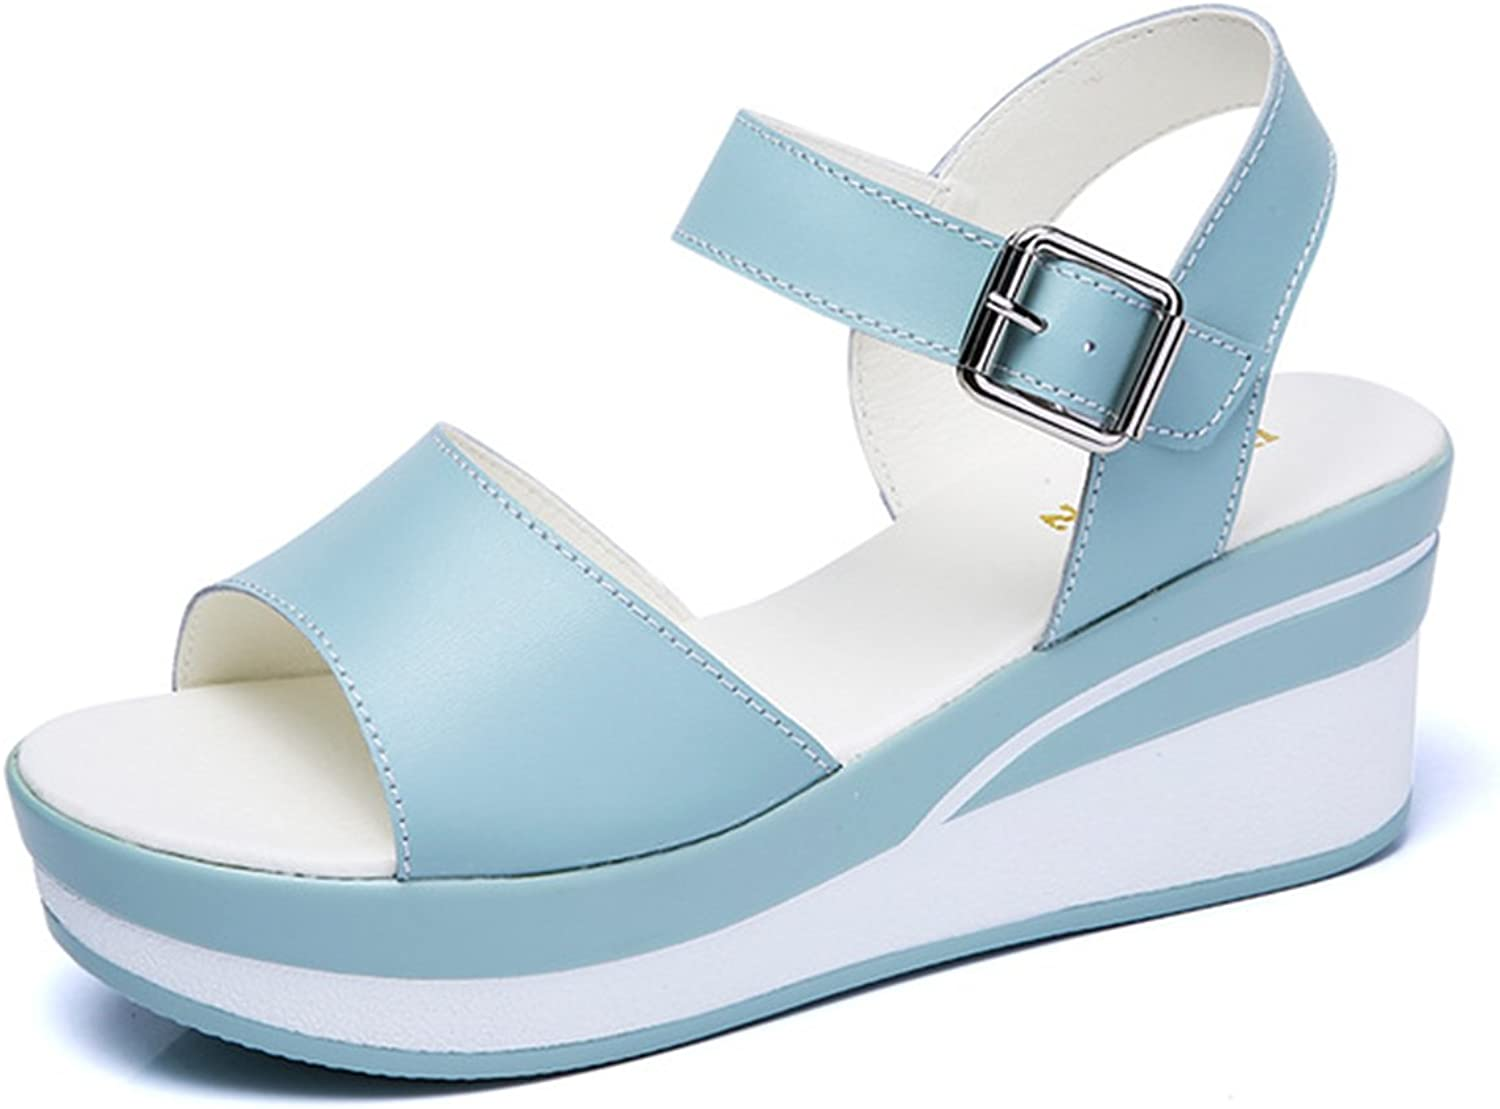 Female Sandals shoes Wedge Platform Leather Ladies Buckle High Heels Weave Strap Sandals Women